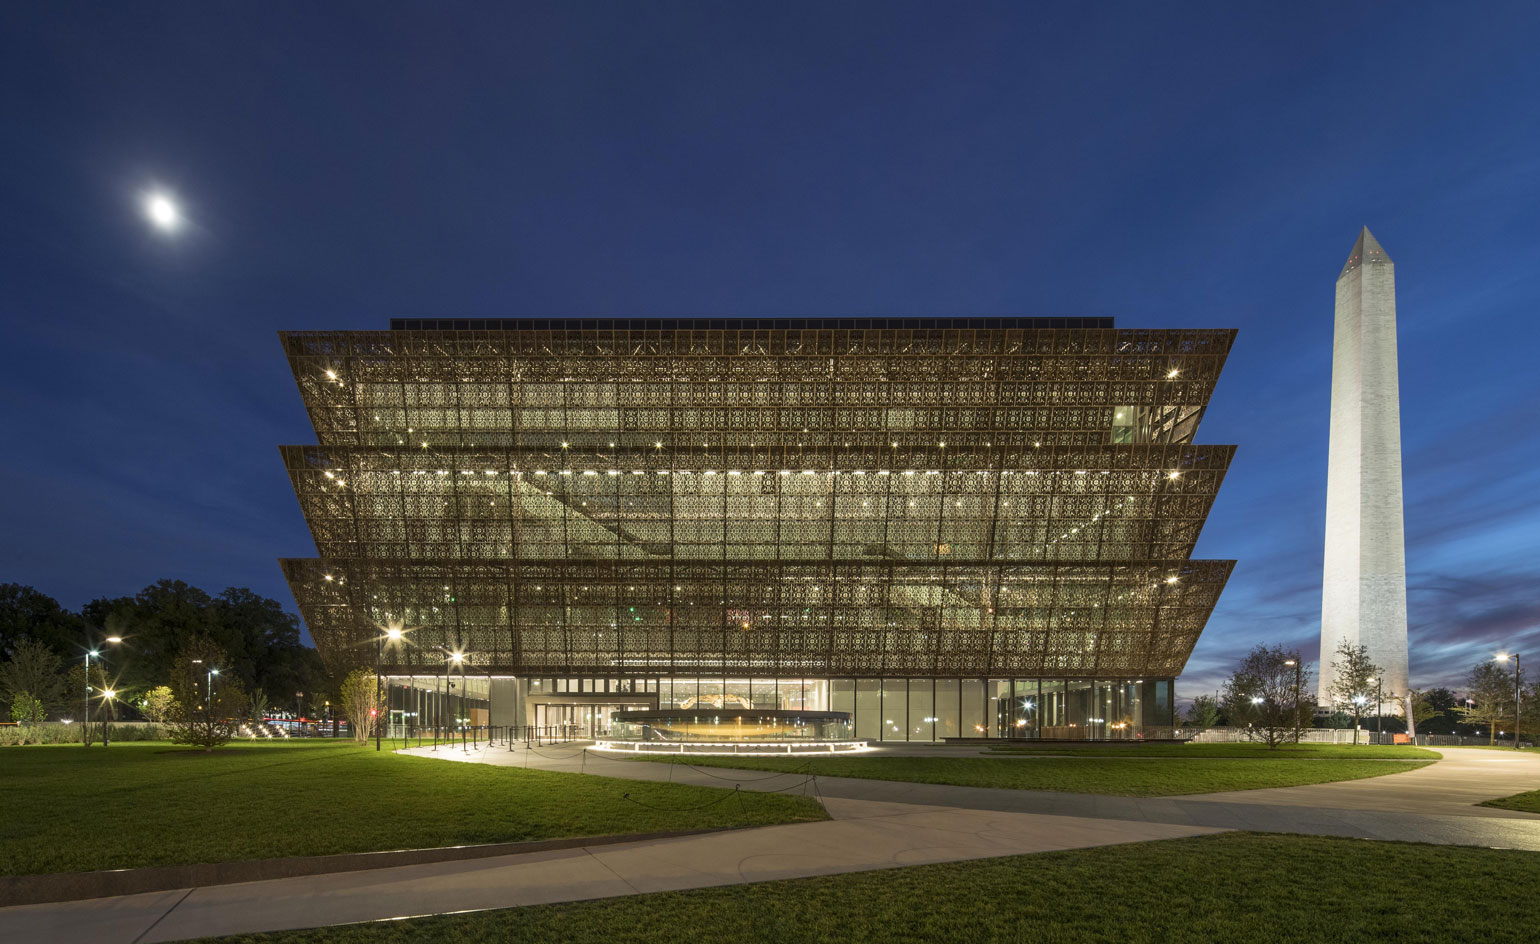 David Adjaye's museum wins Beazley Design Award | Wallpaper*